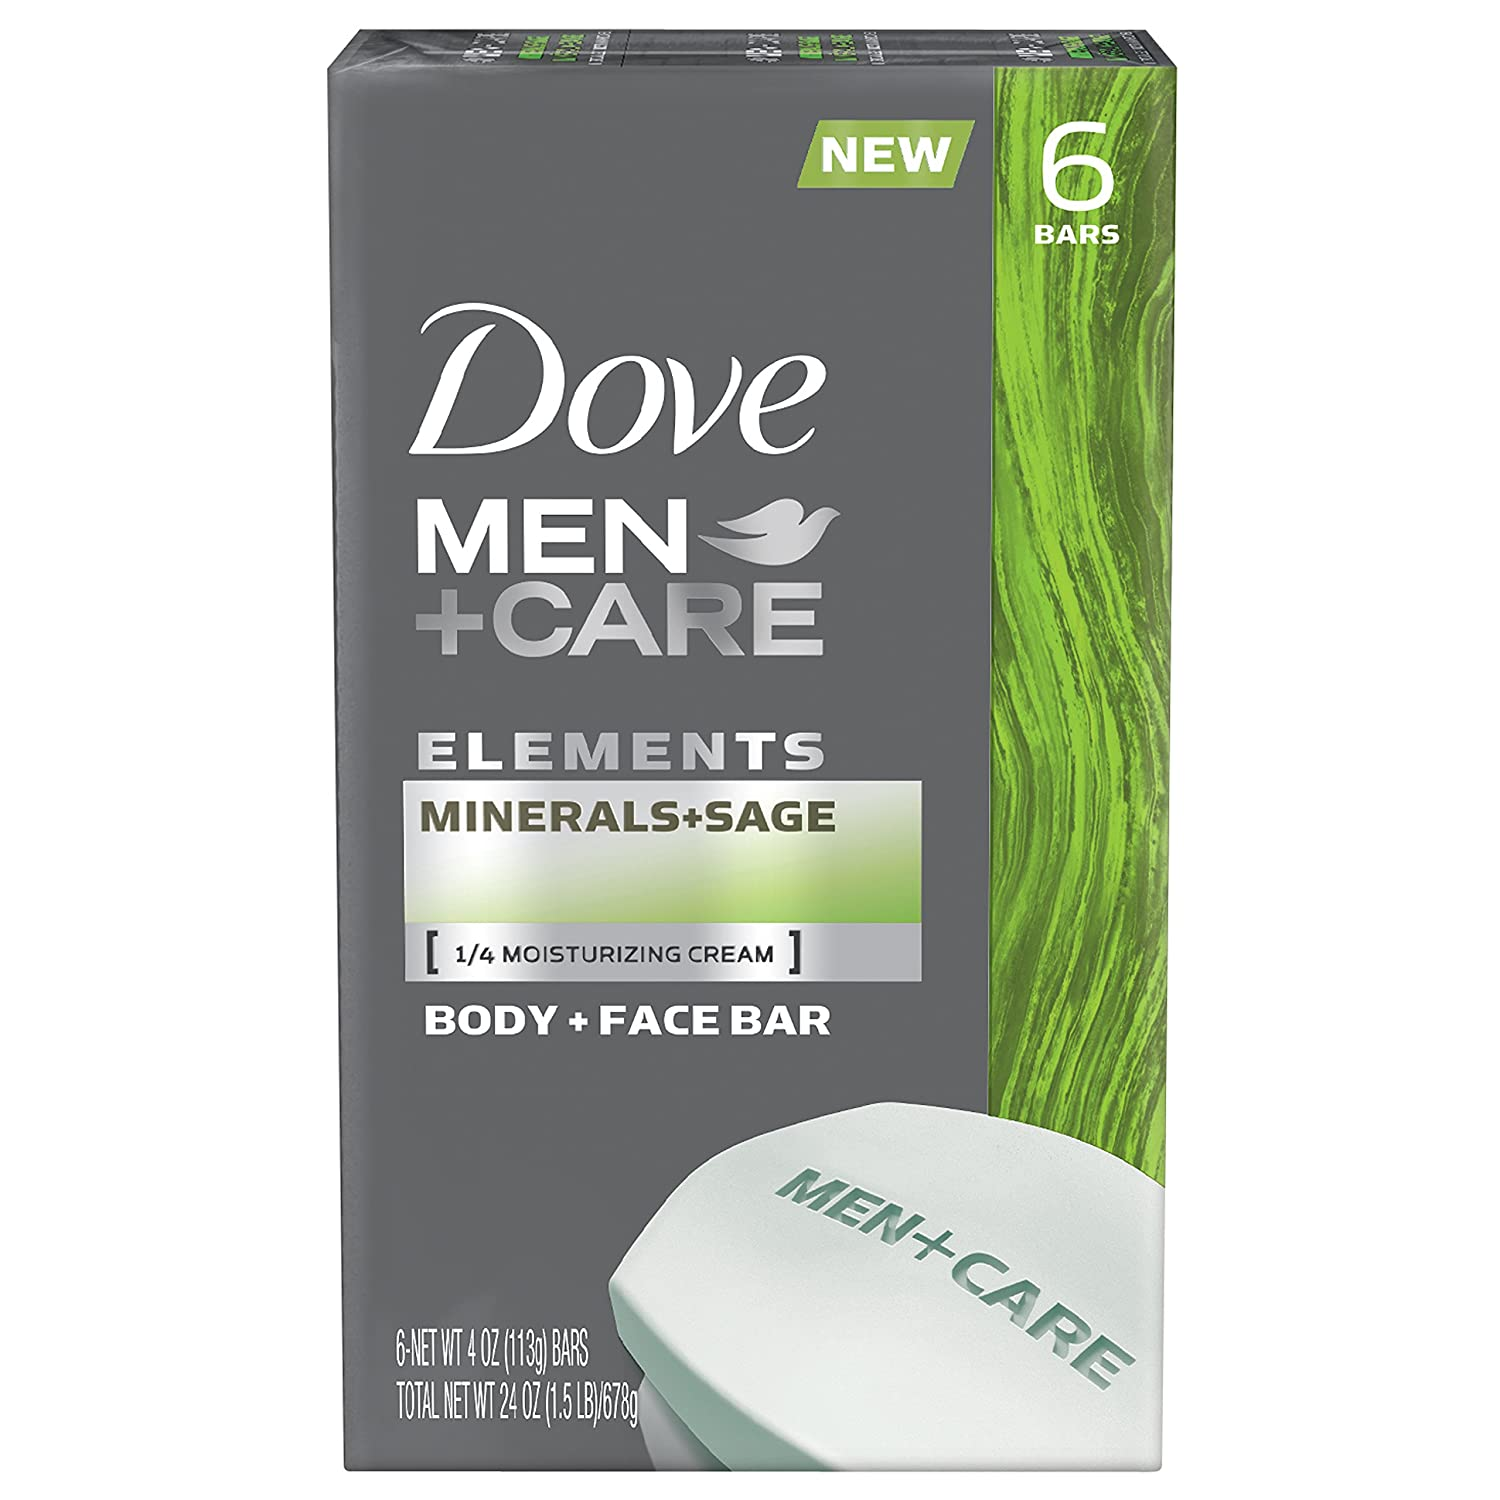 Dove Men+care Elements Bar, Minerals and Sage, 6 Count, 24 Ounce